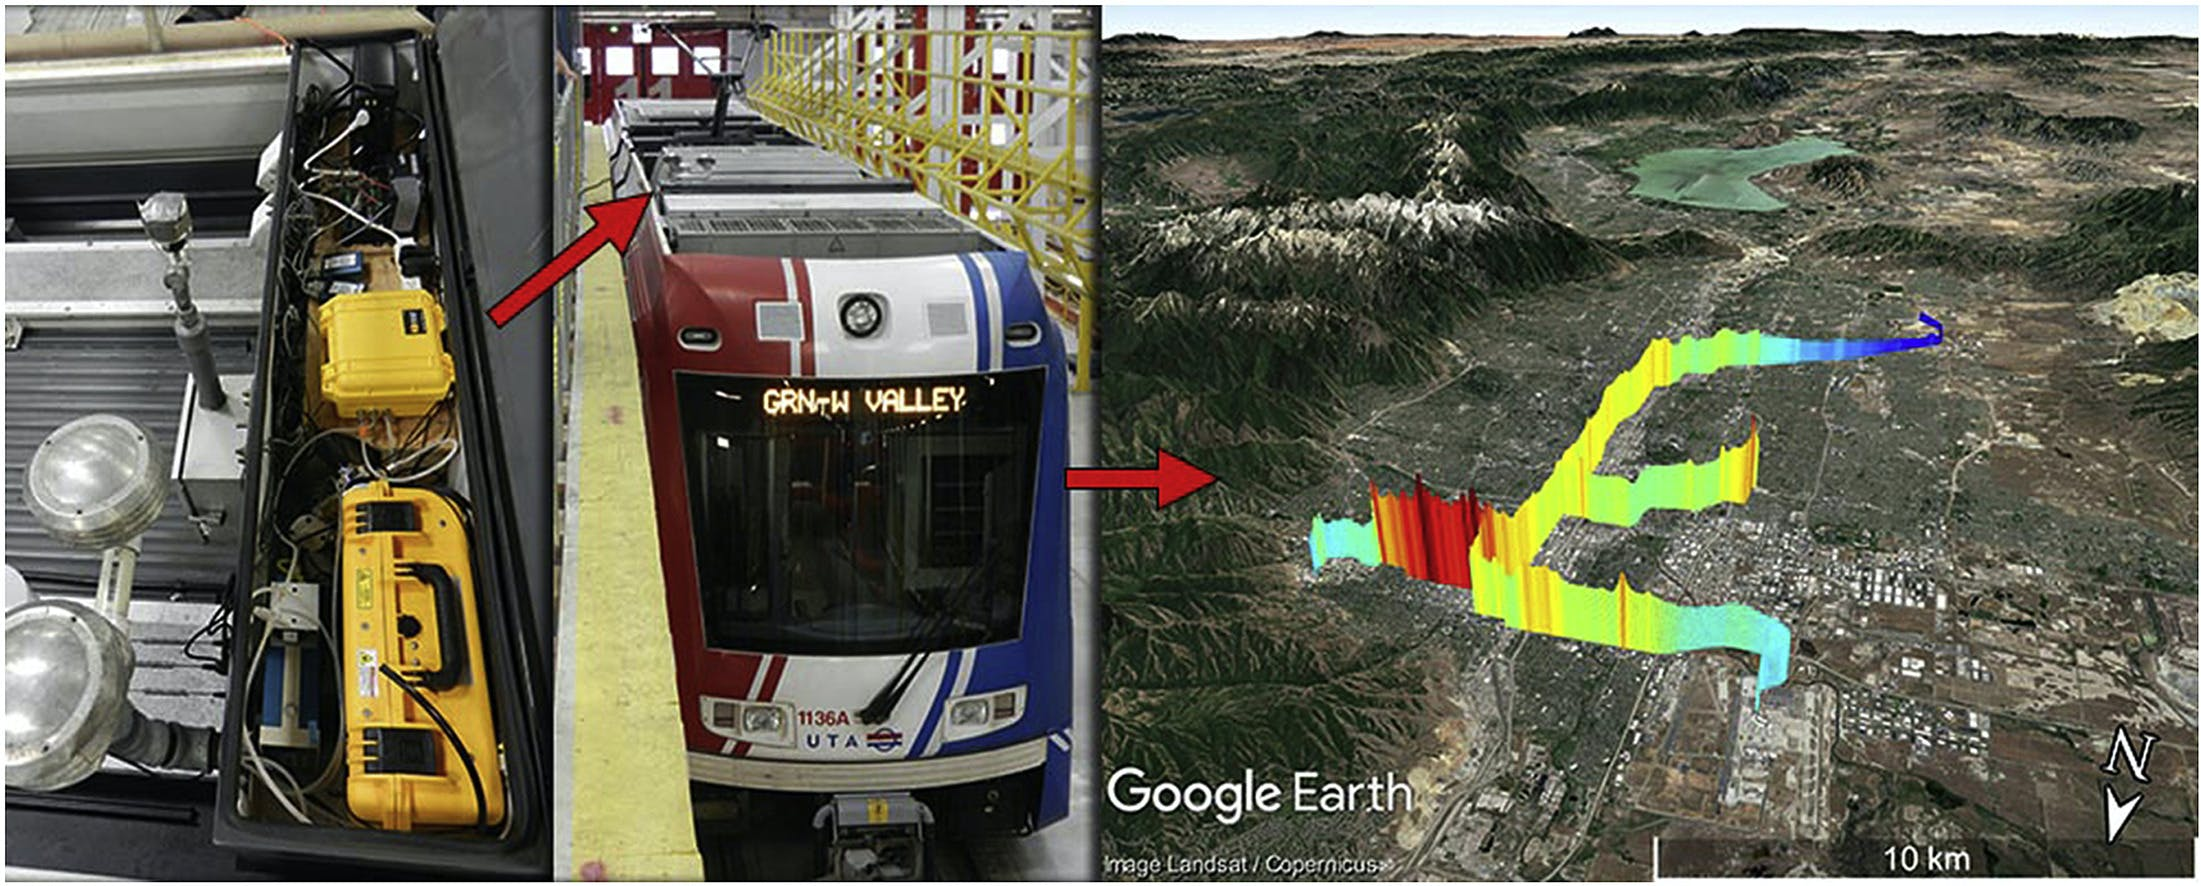 a diagram showing a train with a sensor on top on the left and a google map with air pollution metrics on it on the right